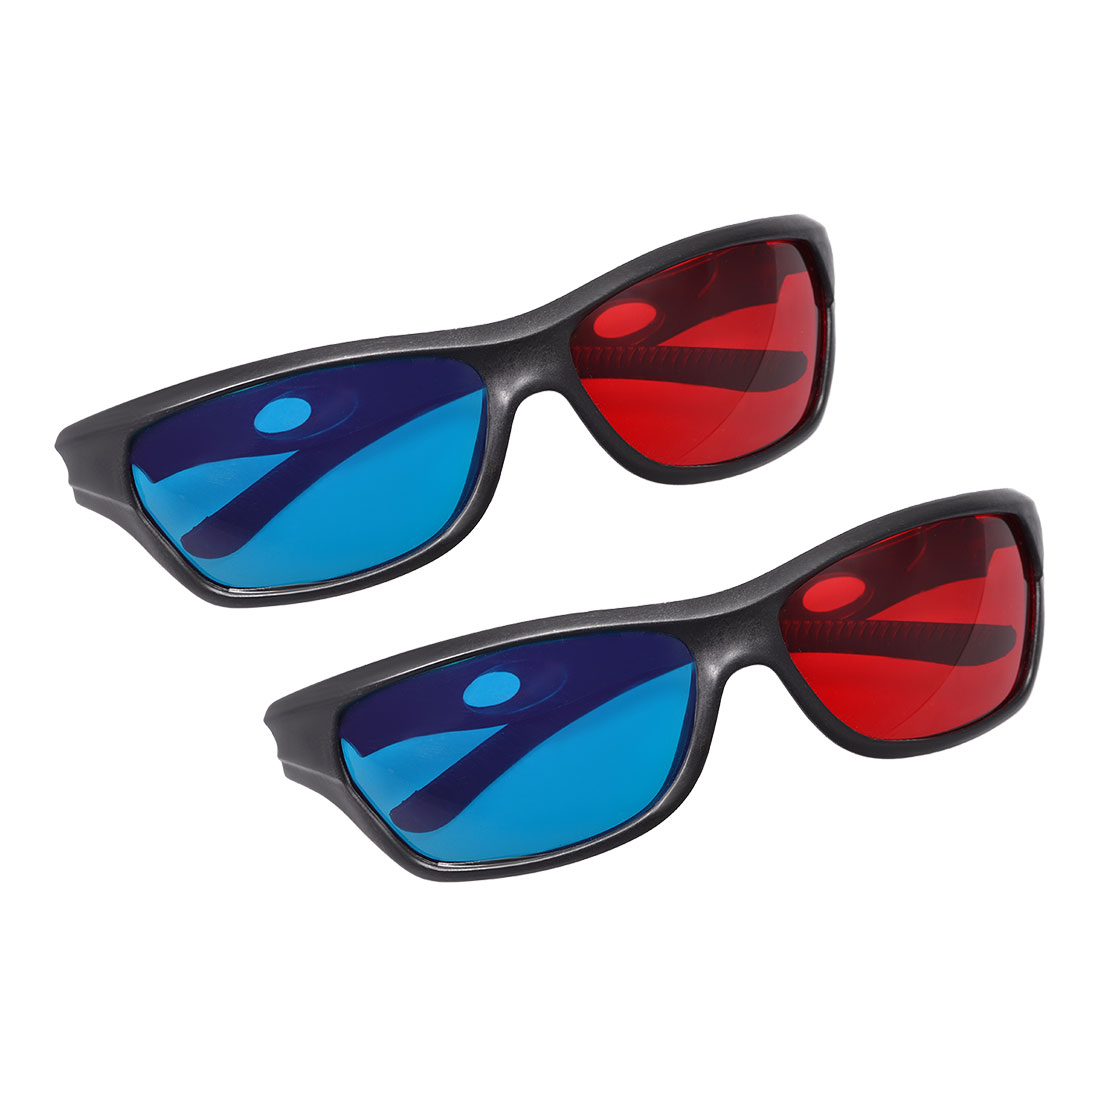 Red-Blue 3D Glasses 3D Visoin Glass for Movies 3D Print Anaglyph Photos 2pcs